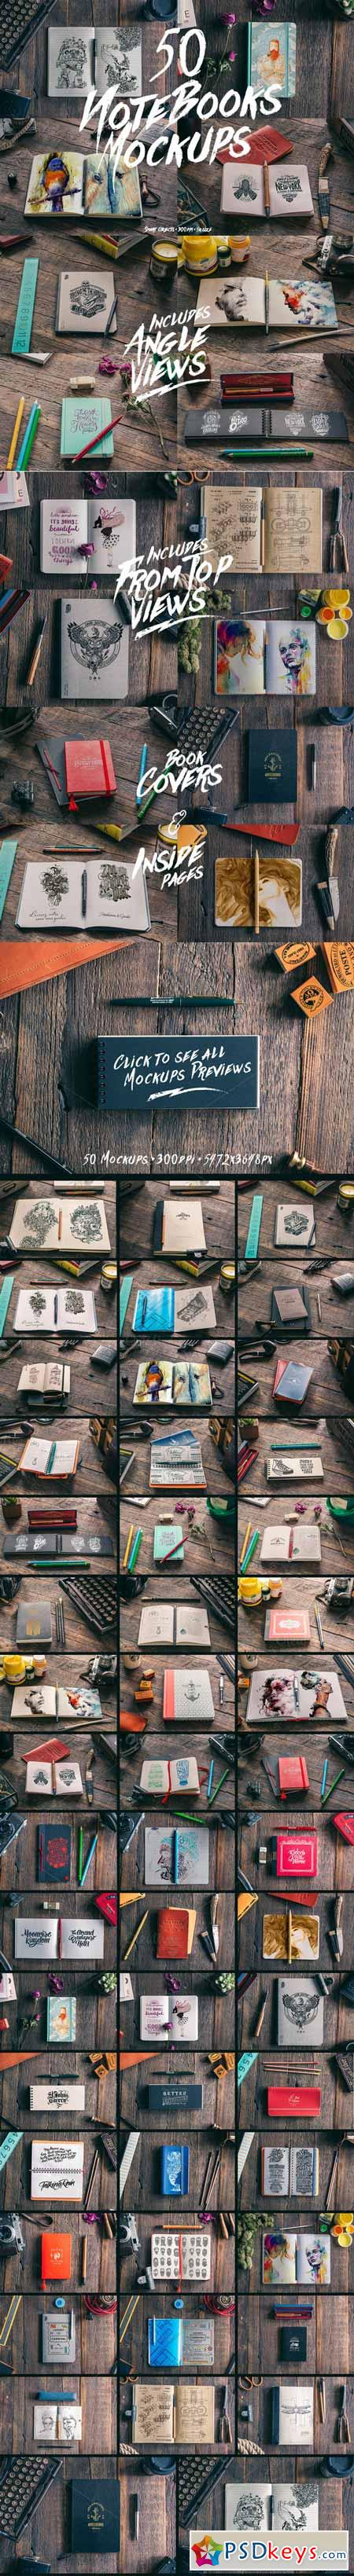 50 Notebooks Mockups 267496